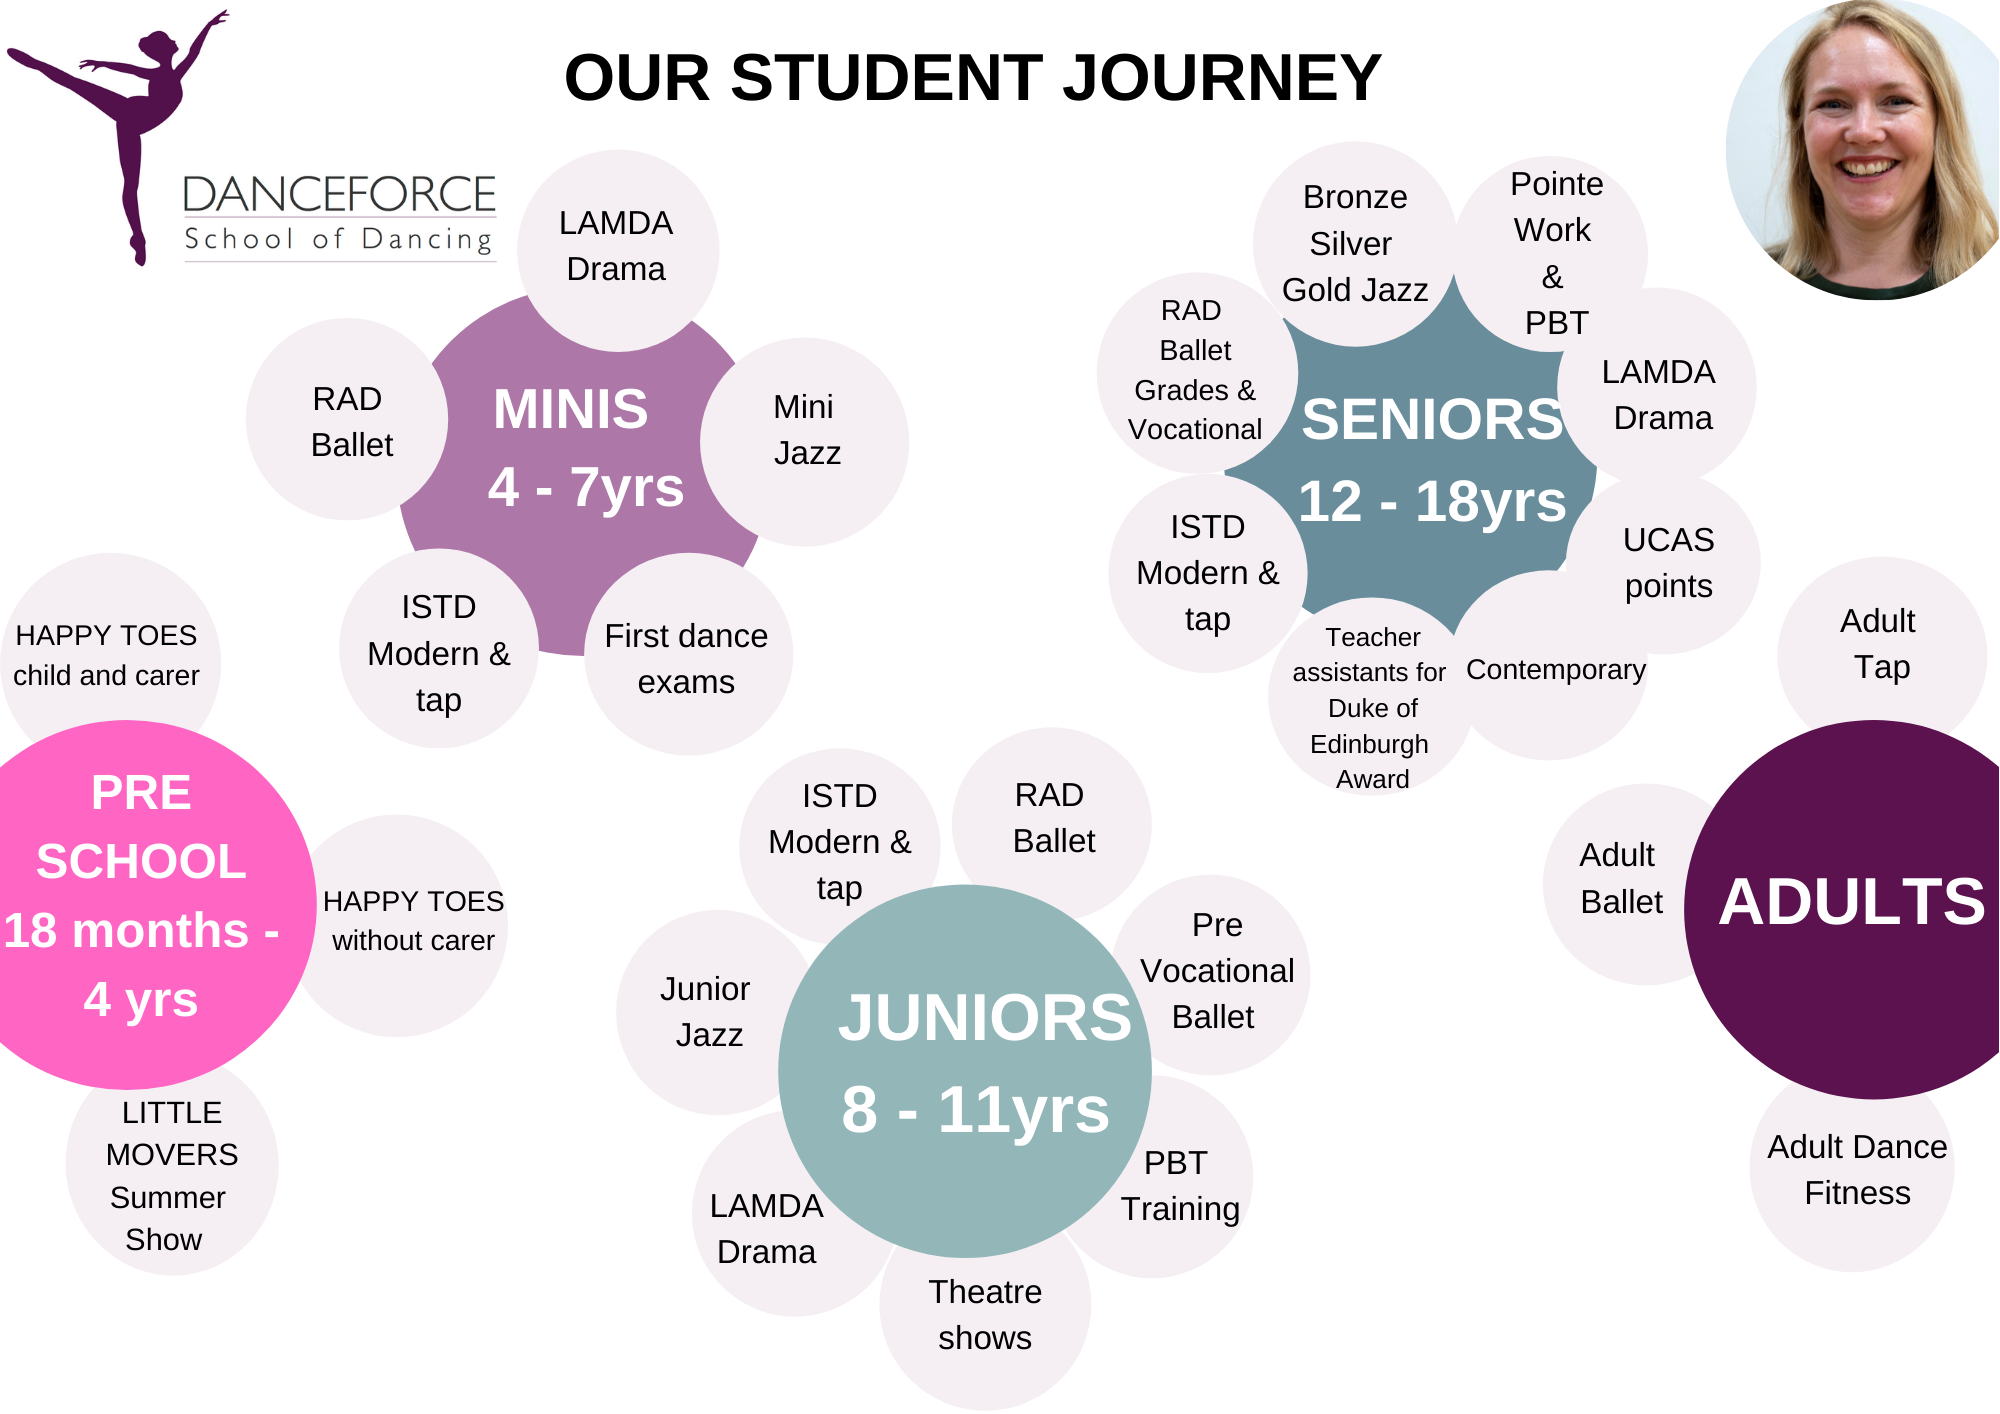 Our Student Journey